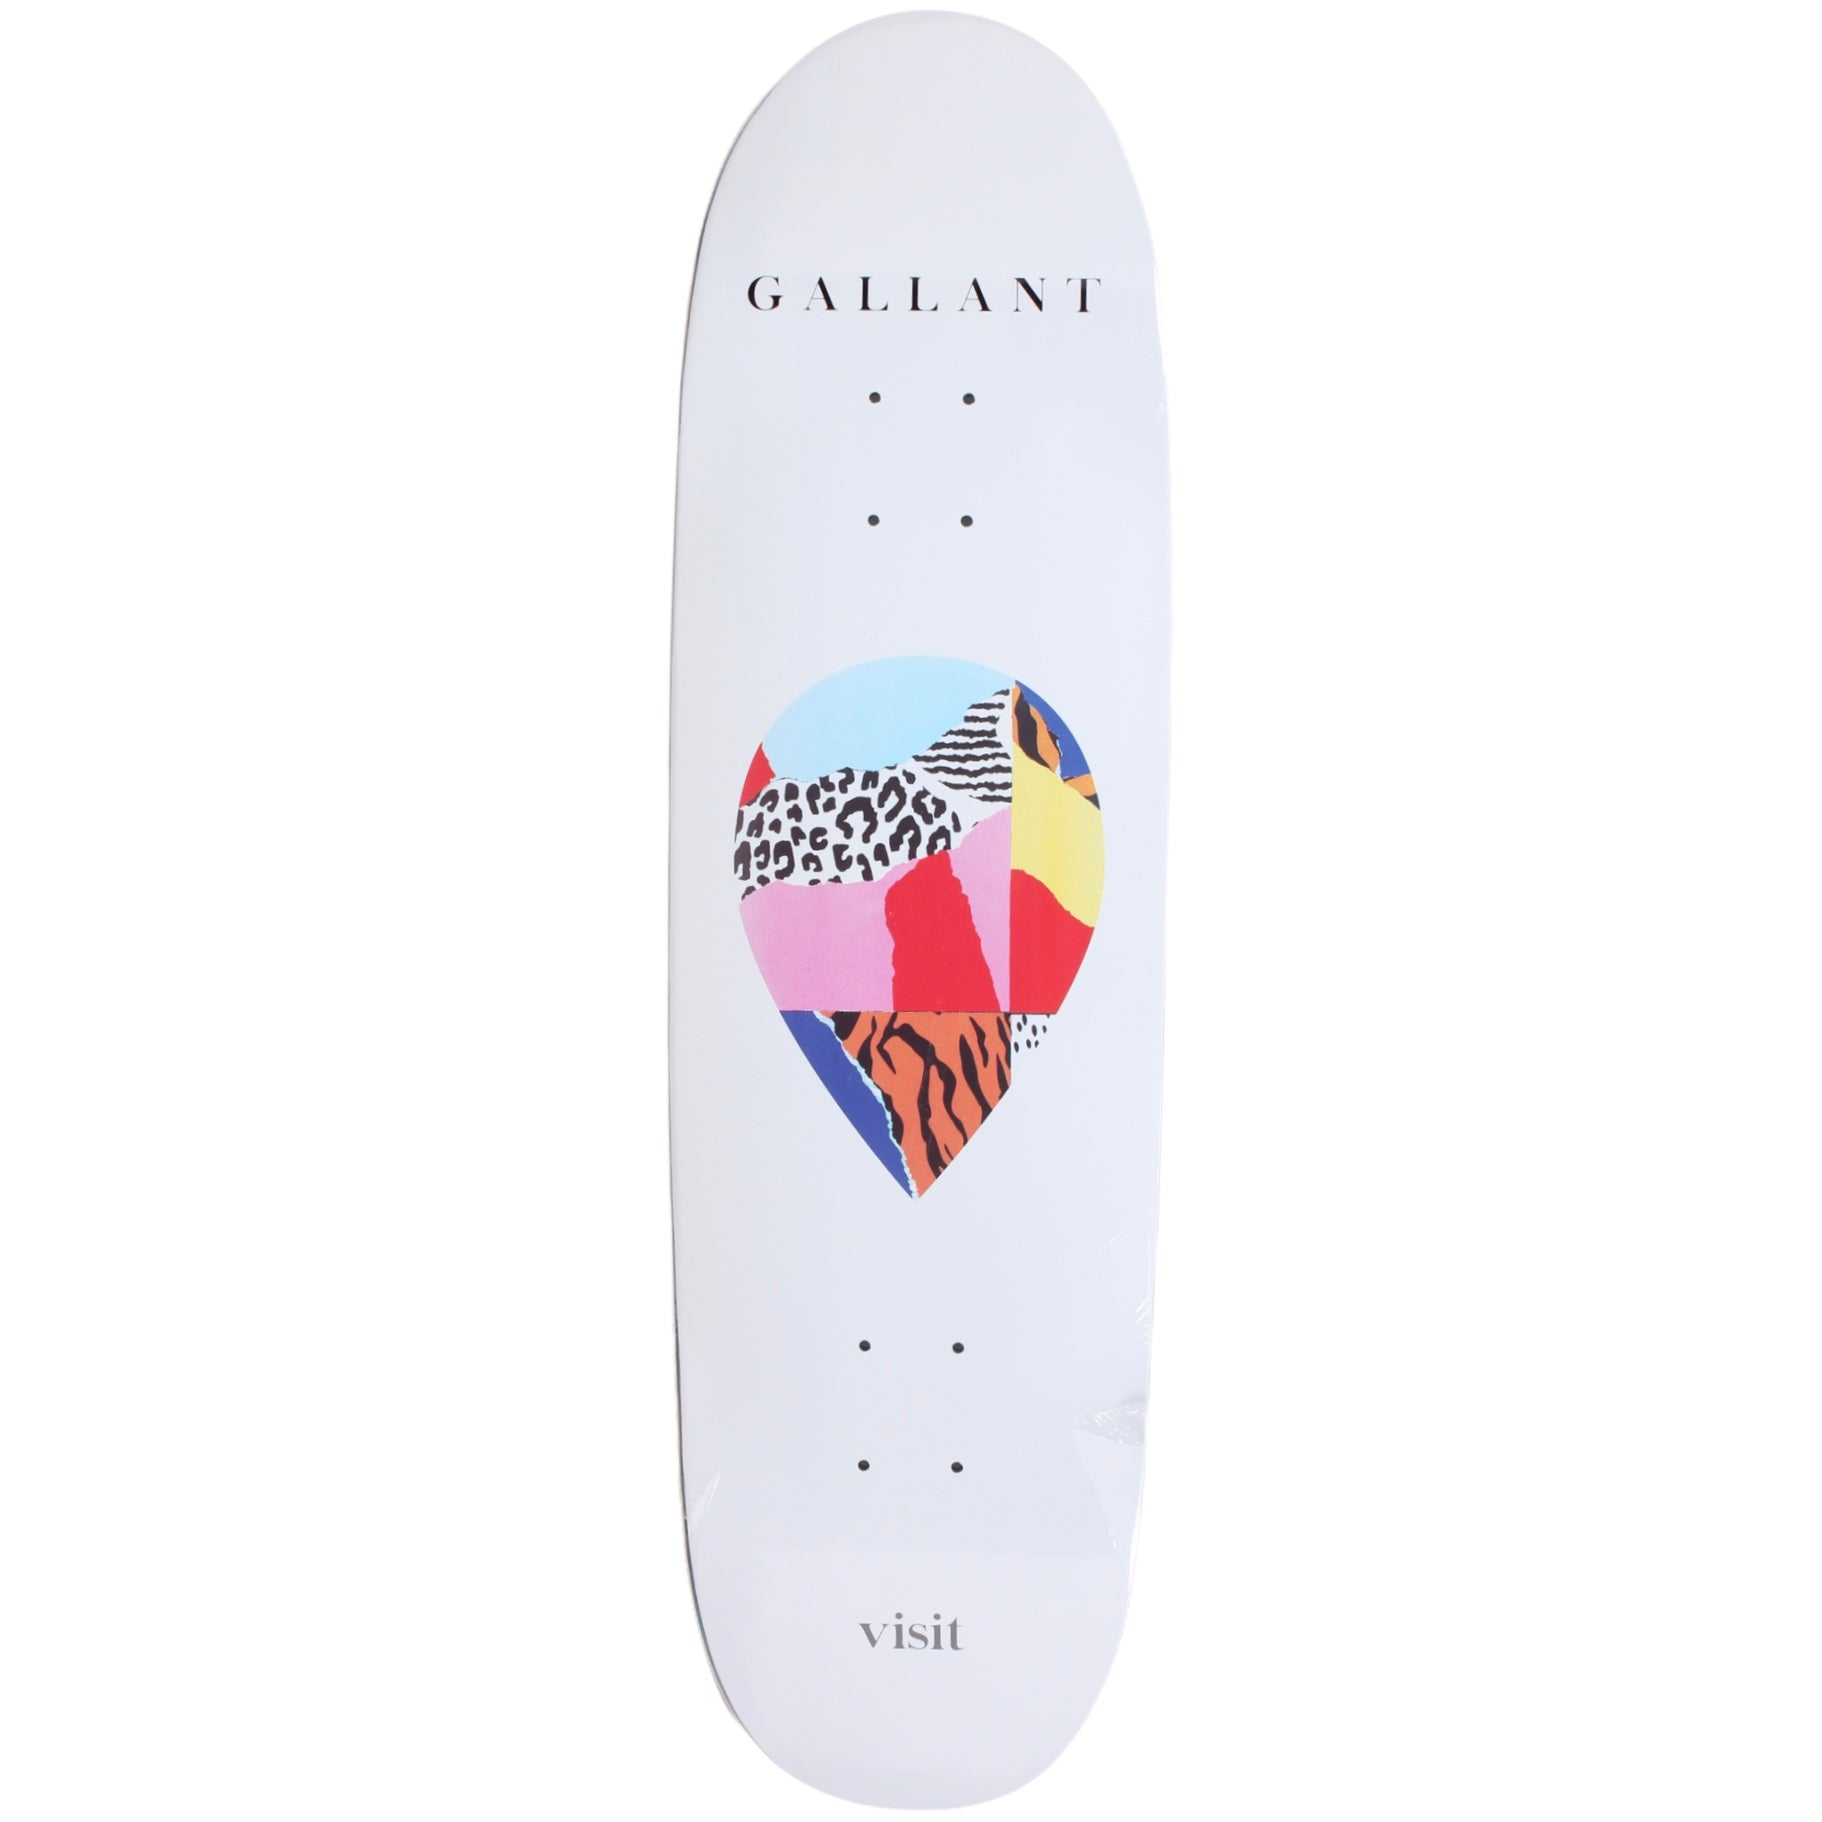 Visit Ryan Gallant Scrap Logo Deck (Football Shape) 8.75""